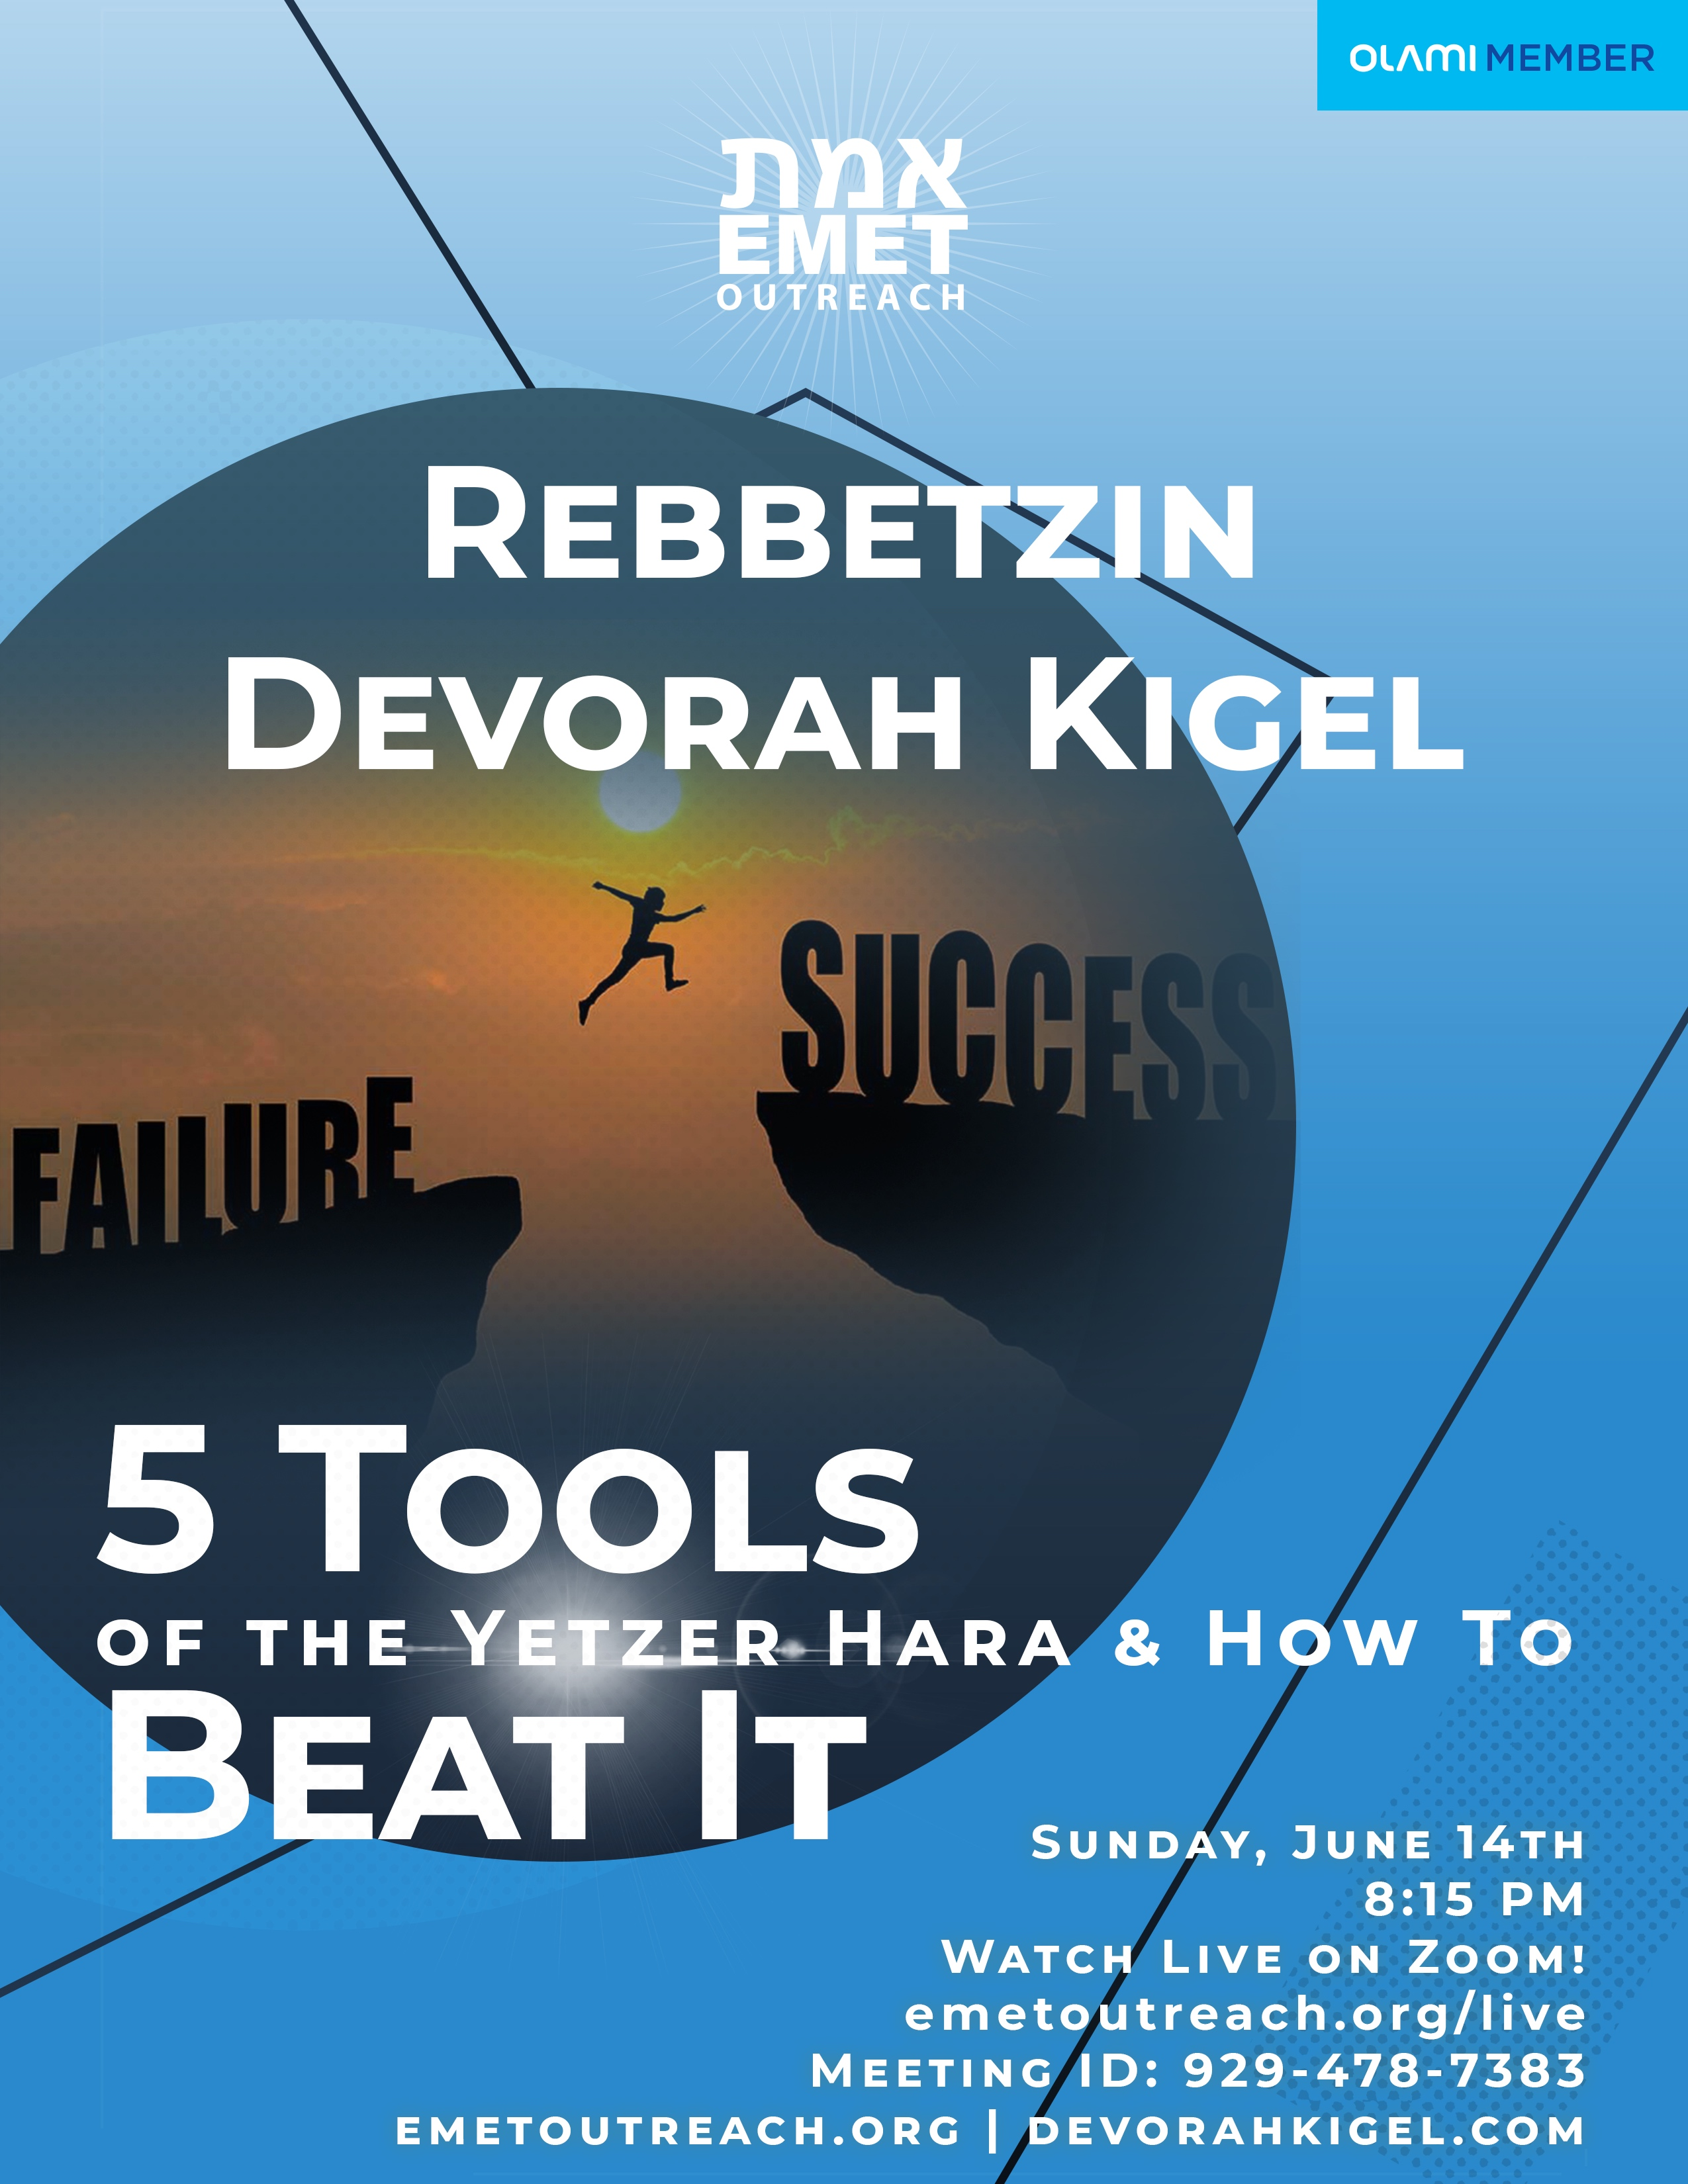 Reb Kigel 5 Tools of The Yetzer Hara 2020v2